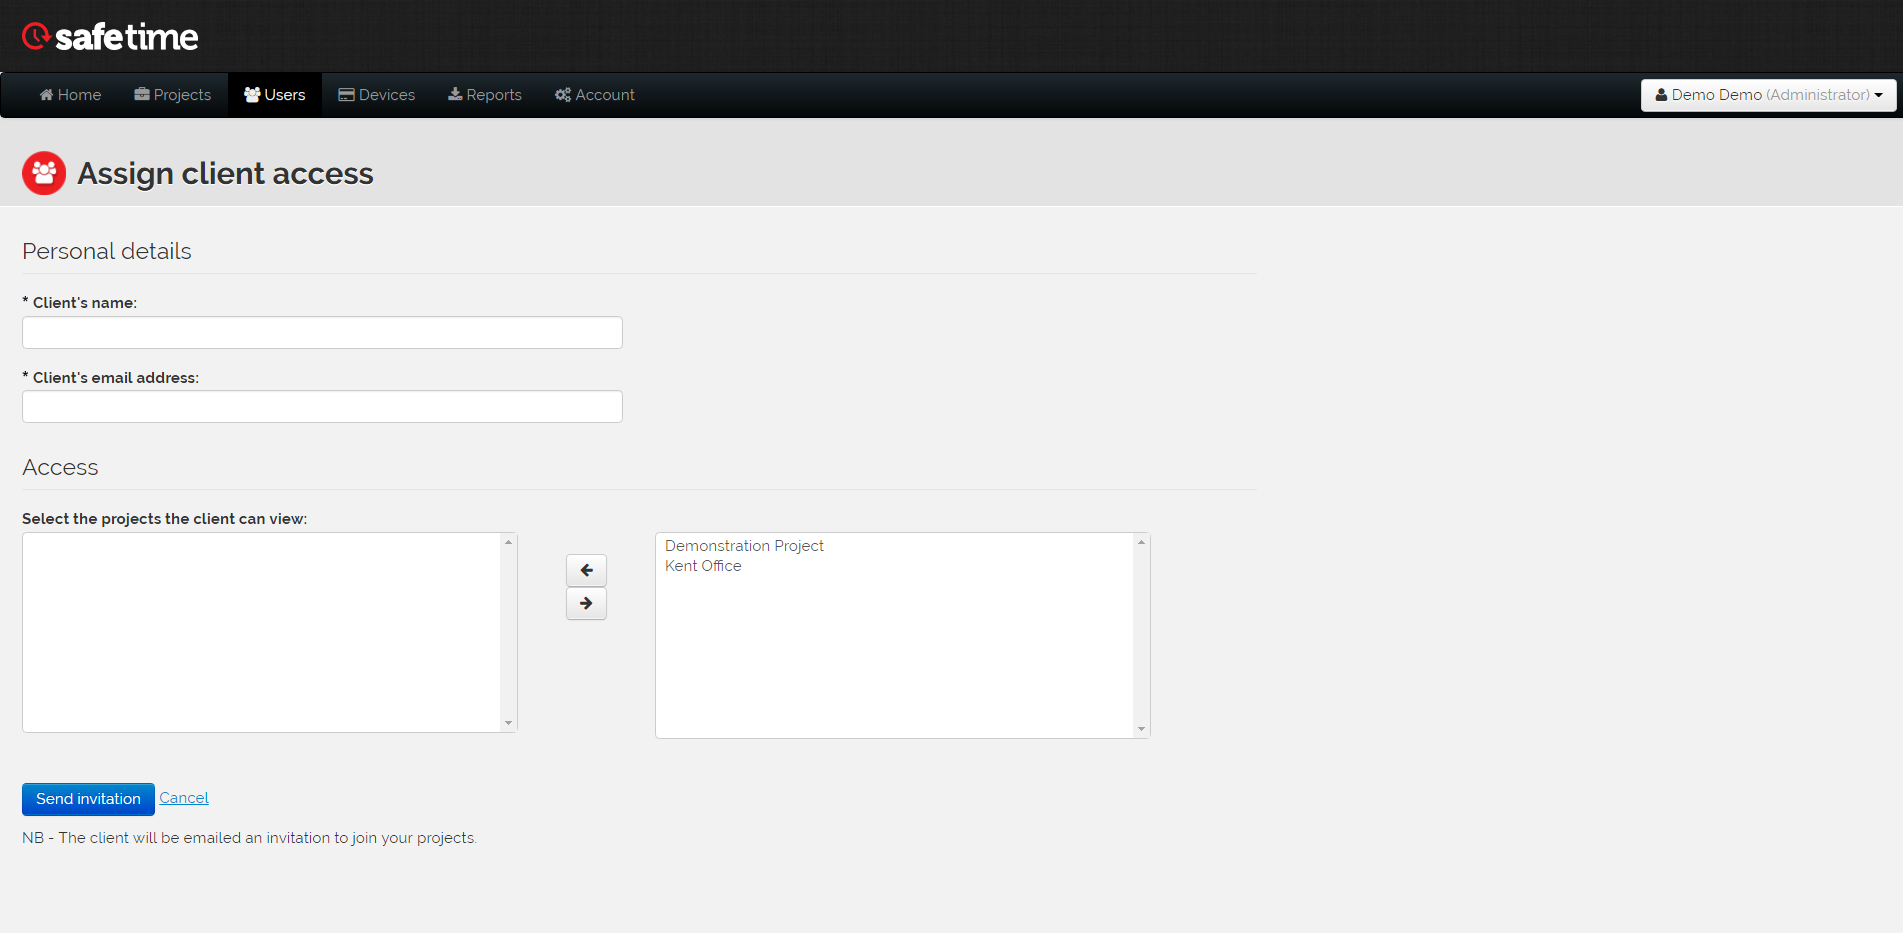 image of the assign client access form